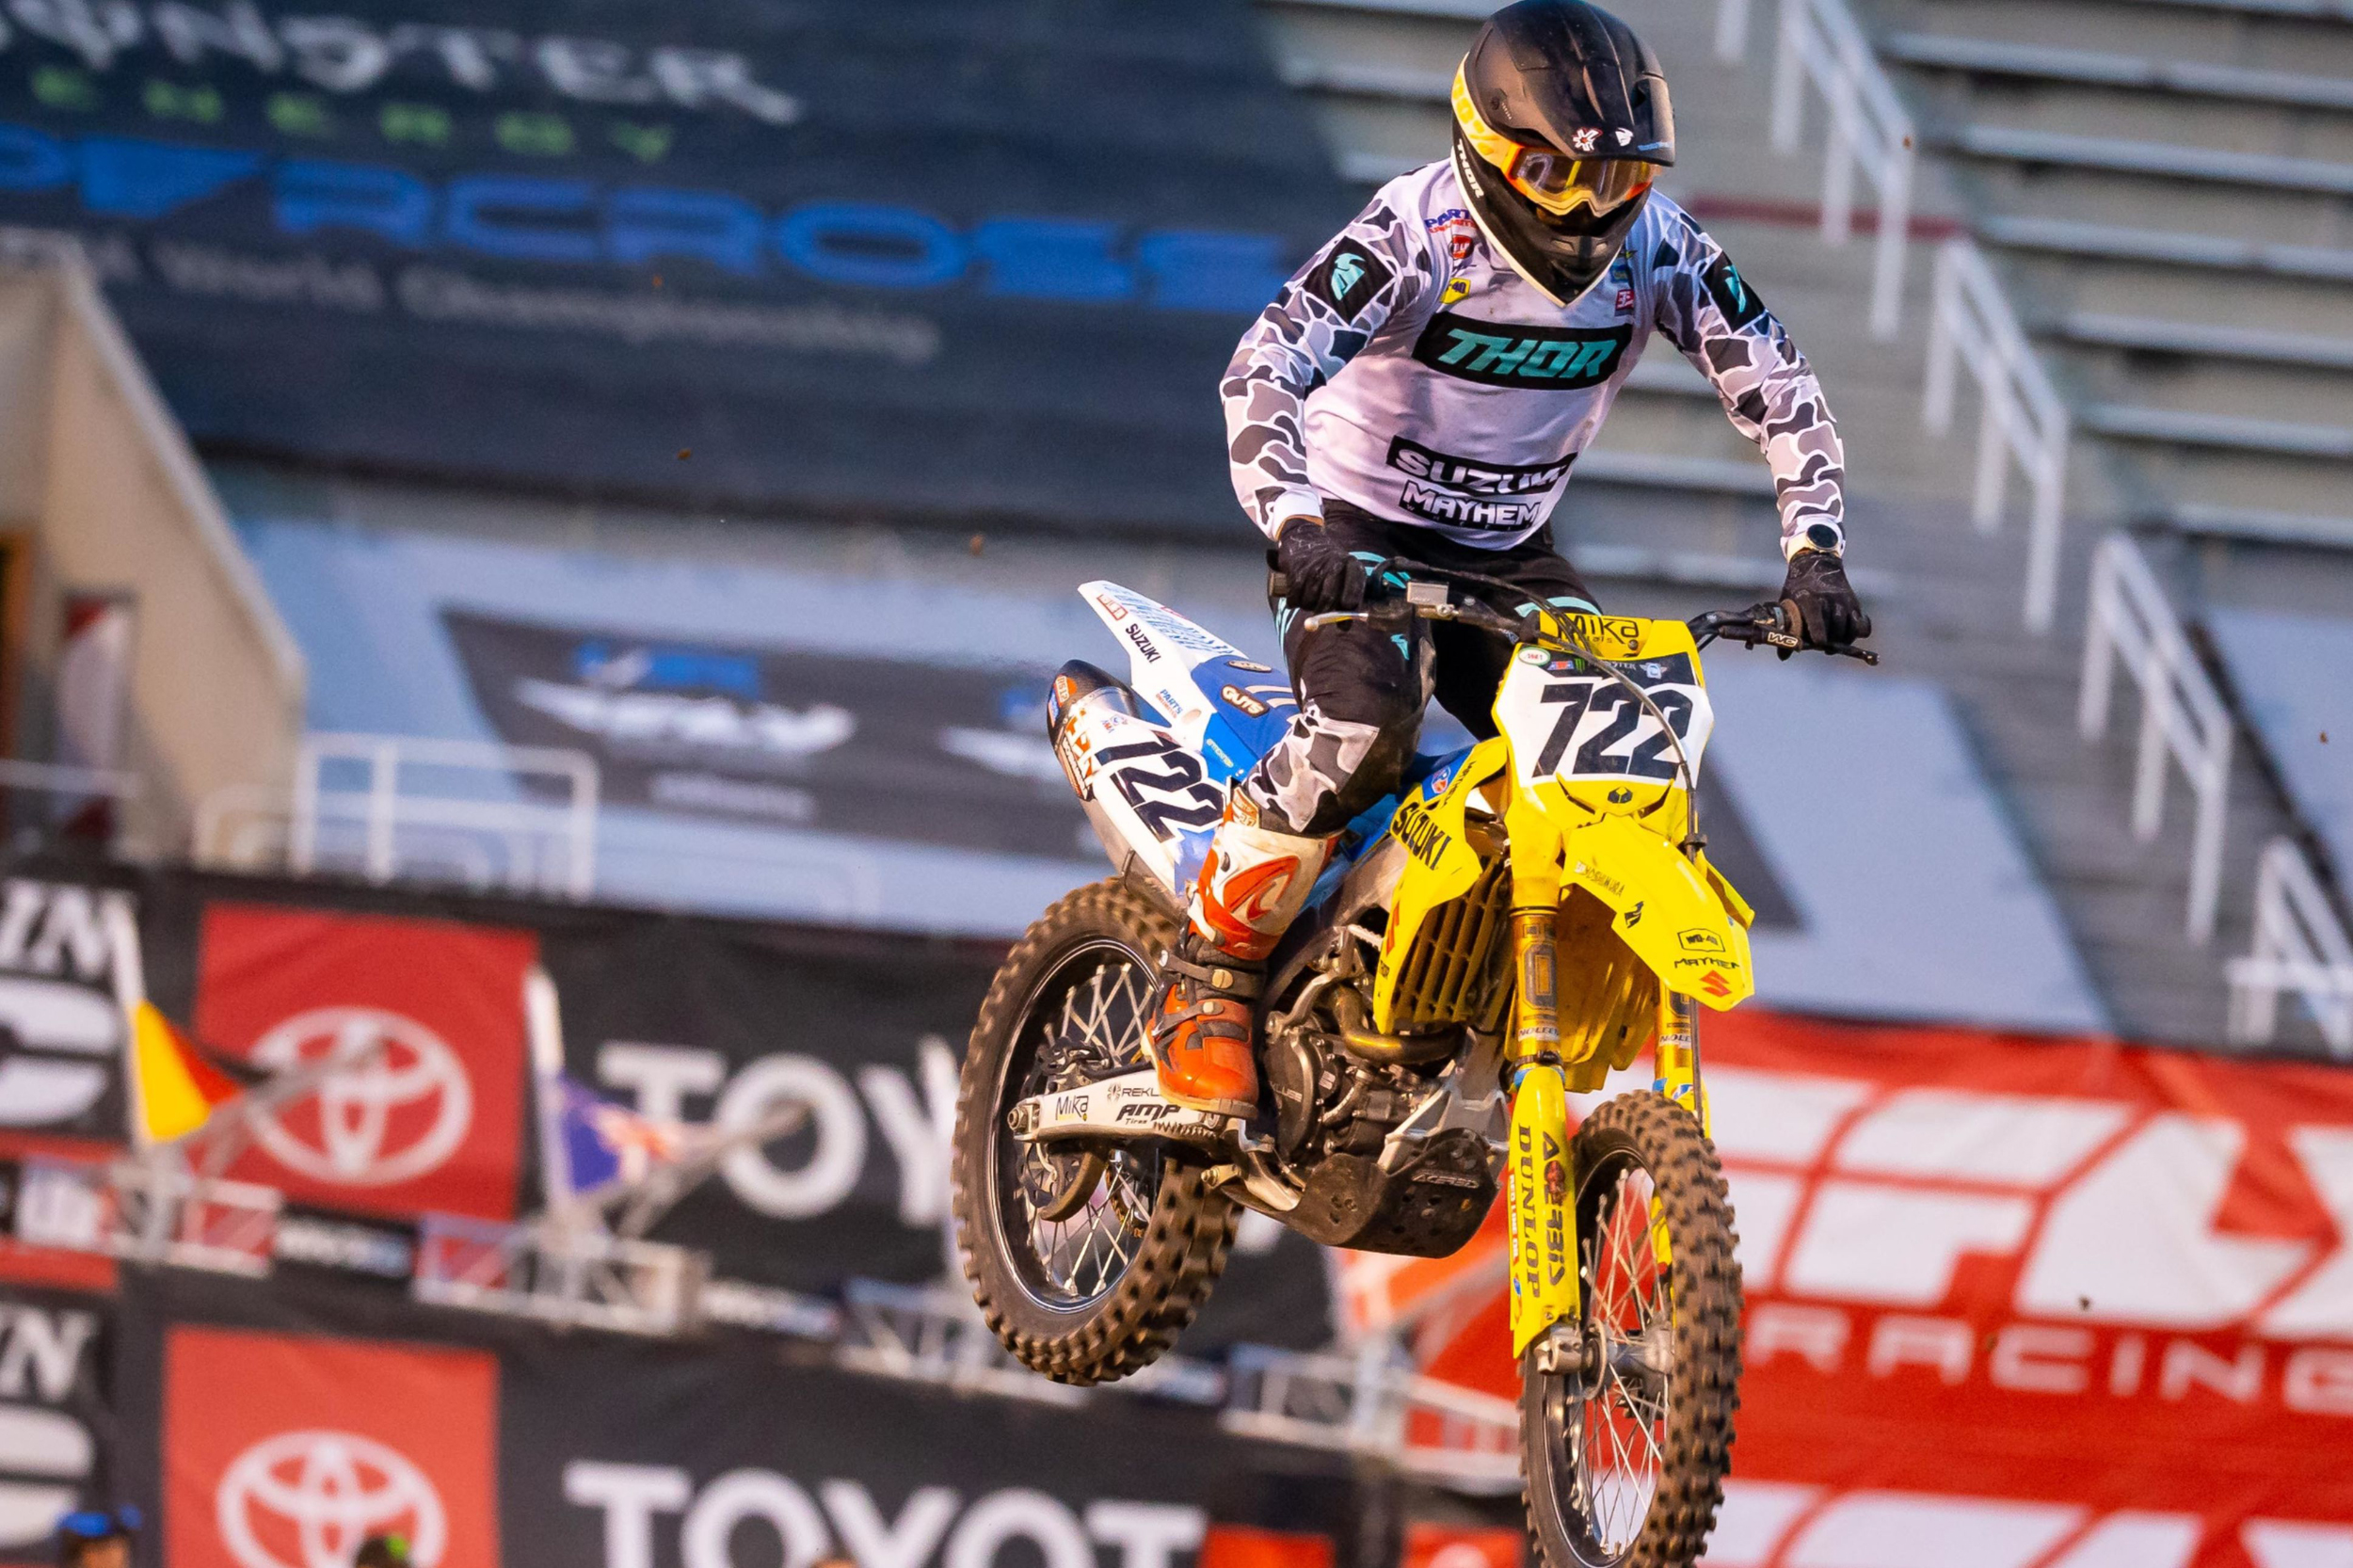 Adam Enticknap (#722) soars over the Salt Lake City track on his Suzuki RM-Z450